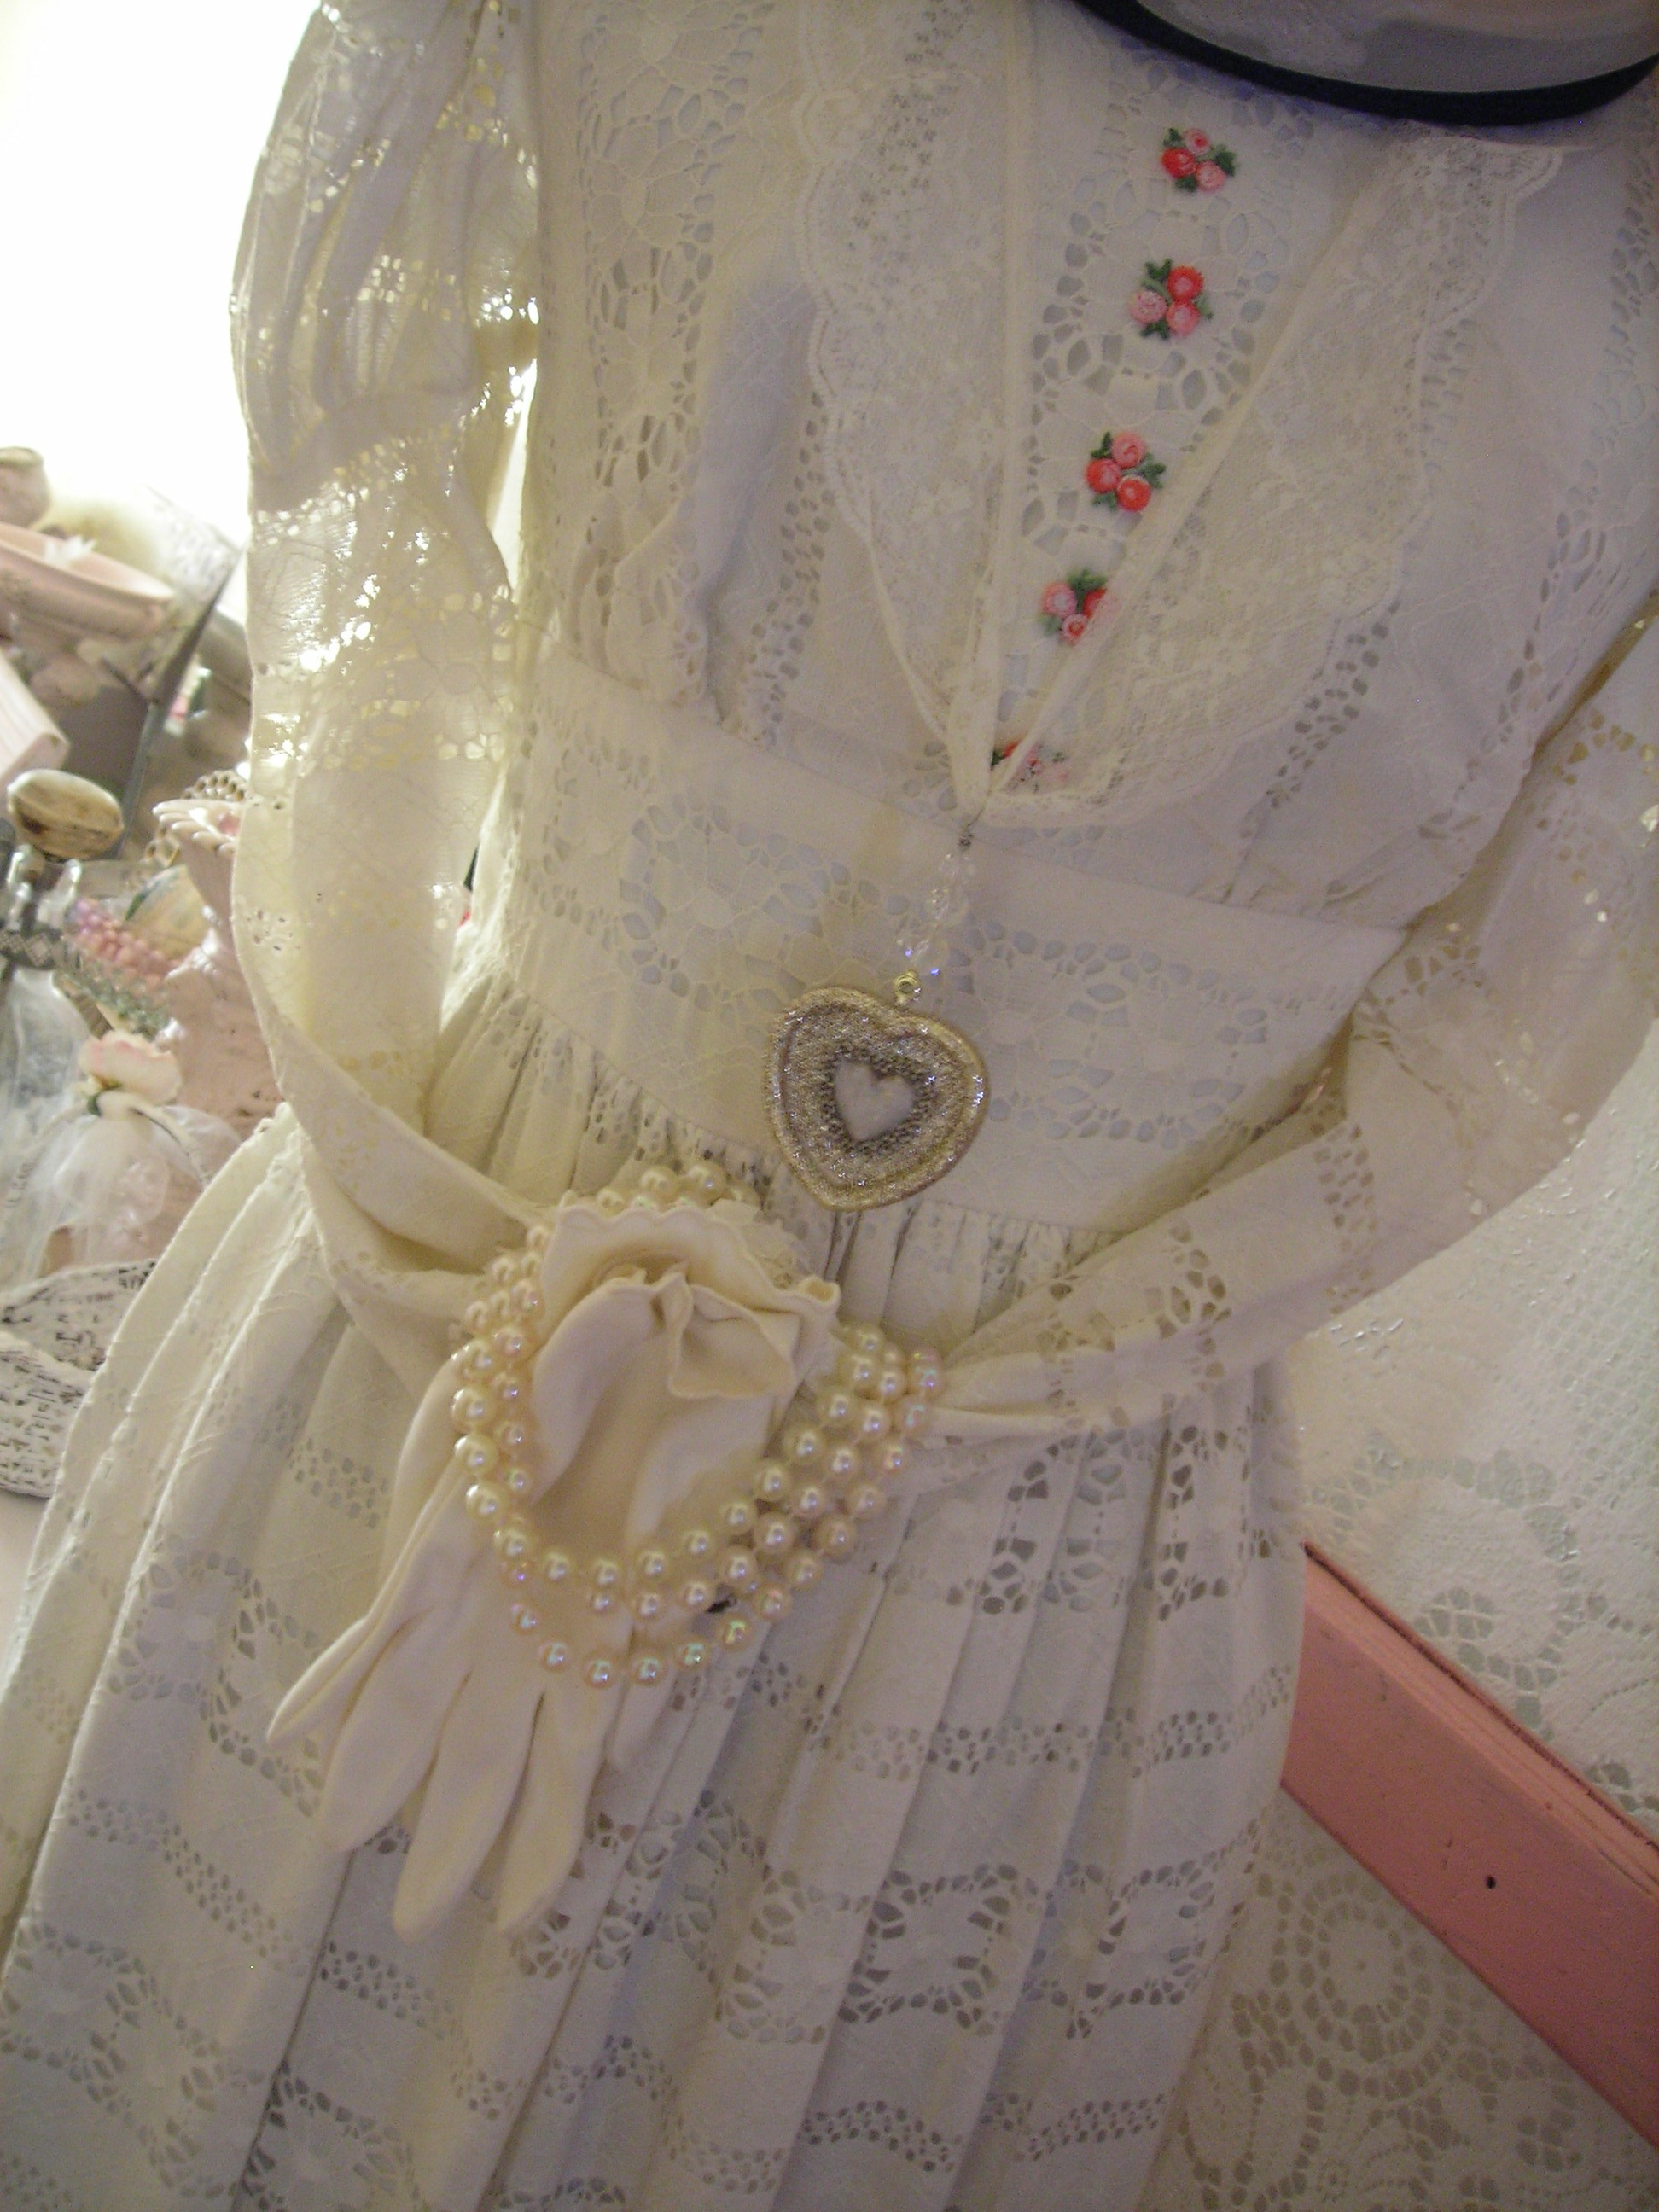 close up ... sweet gloves and pearls